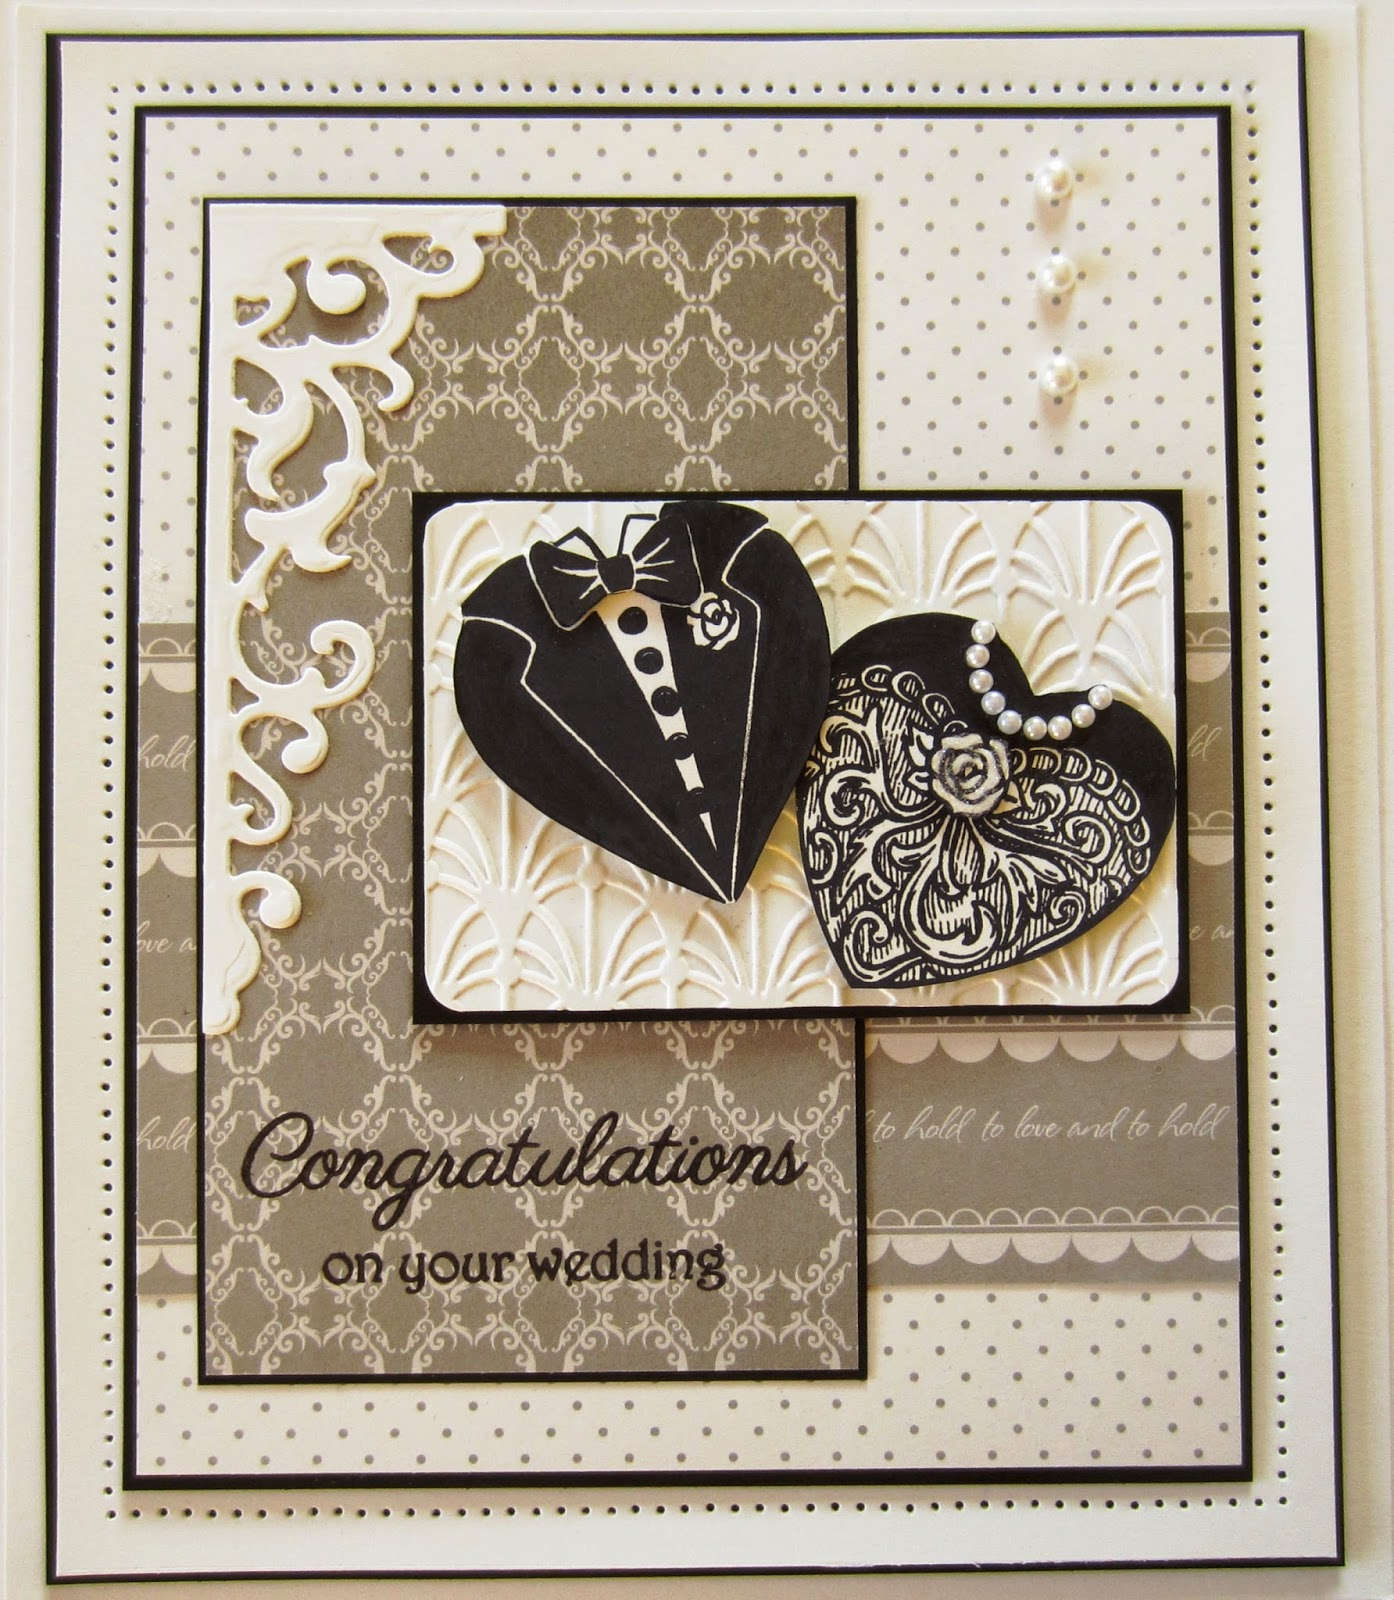 Congrats On Your Wedding: PartiCraft (Participate In Craft): Congratulations On Your